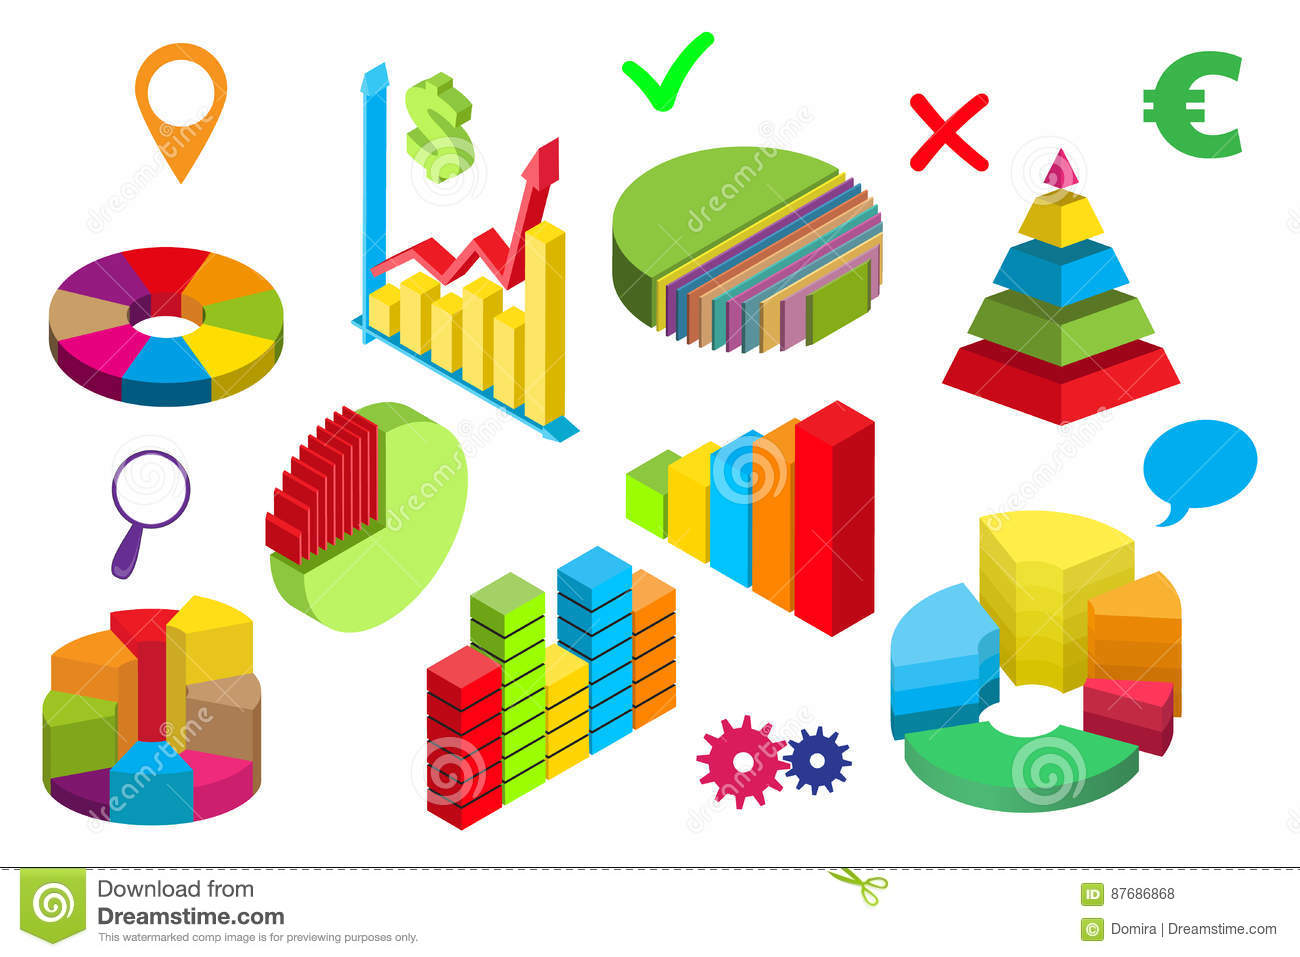 Isometric Diagrams Graphs Icons Pyramid Pie Charts Vector Stock Diagram The Purpose Of An Is To